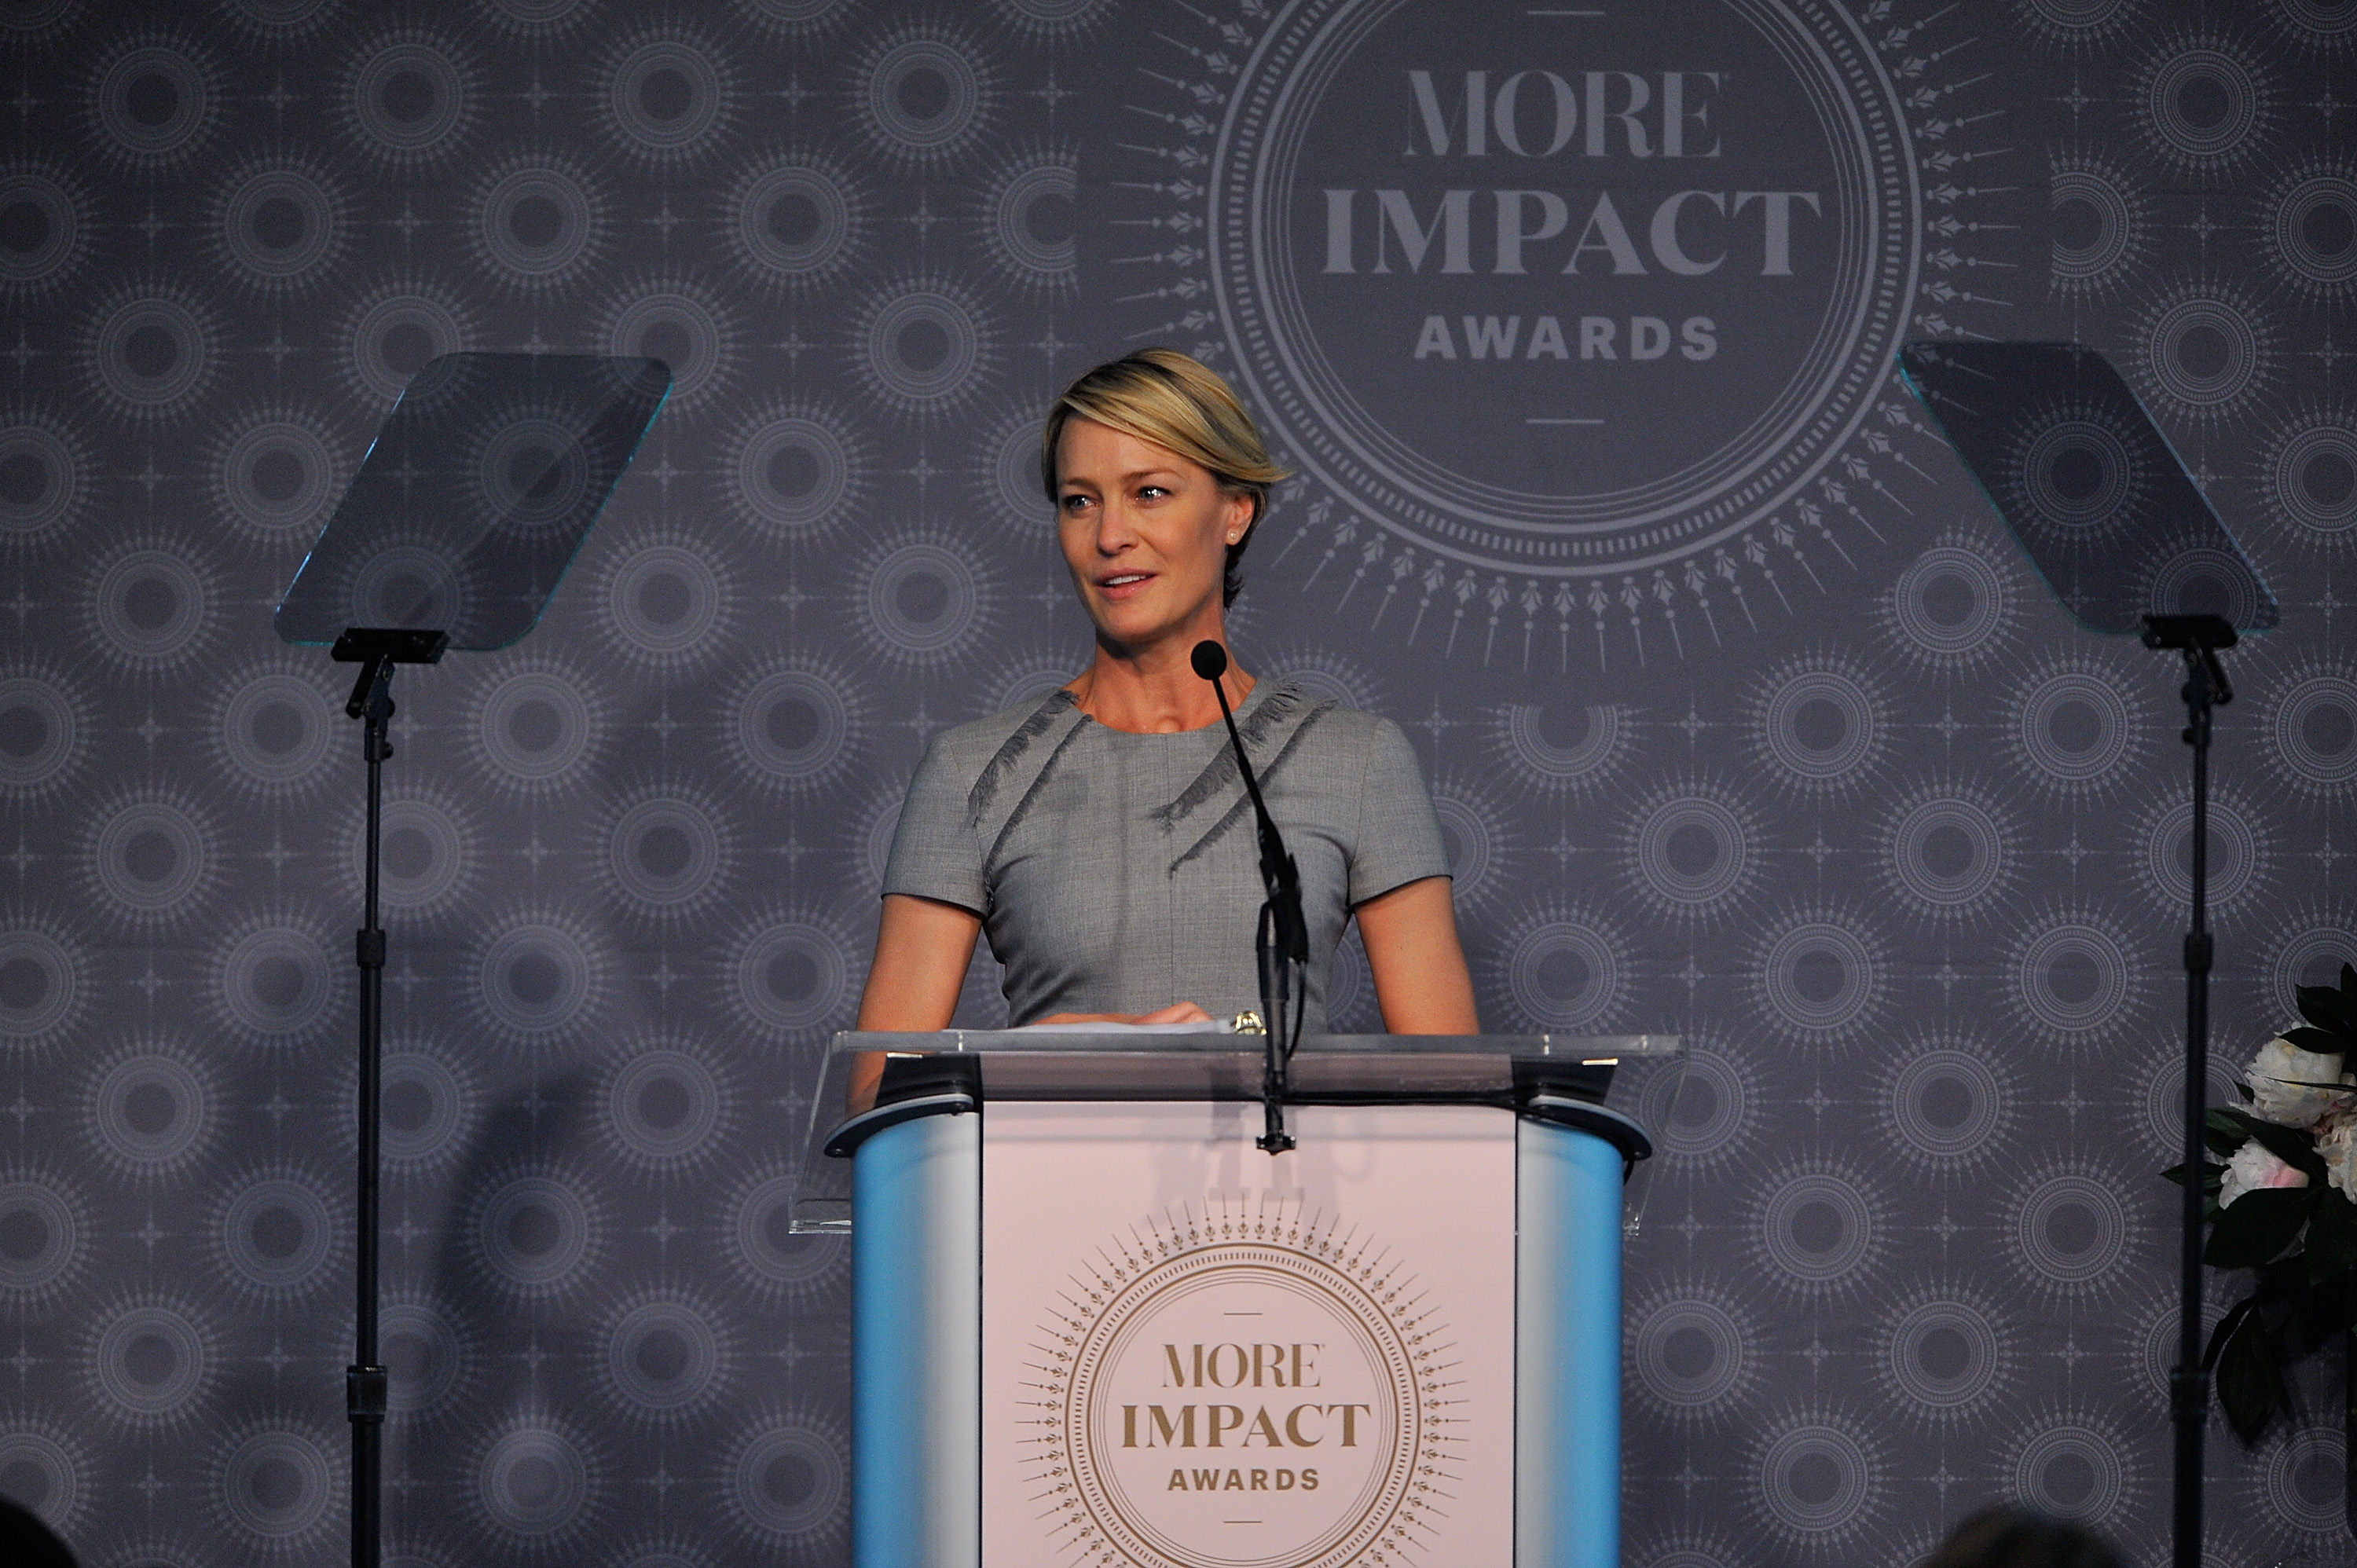 Actress Robin Wright speaks at the 2015 MORE Impact Awards Luncheon at The Newseum on June 29, 2015 in Washington, DC.